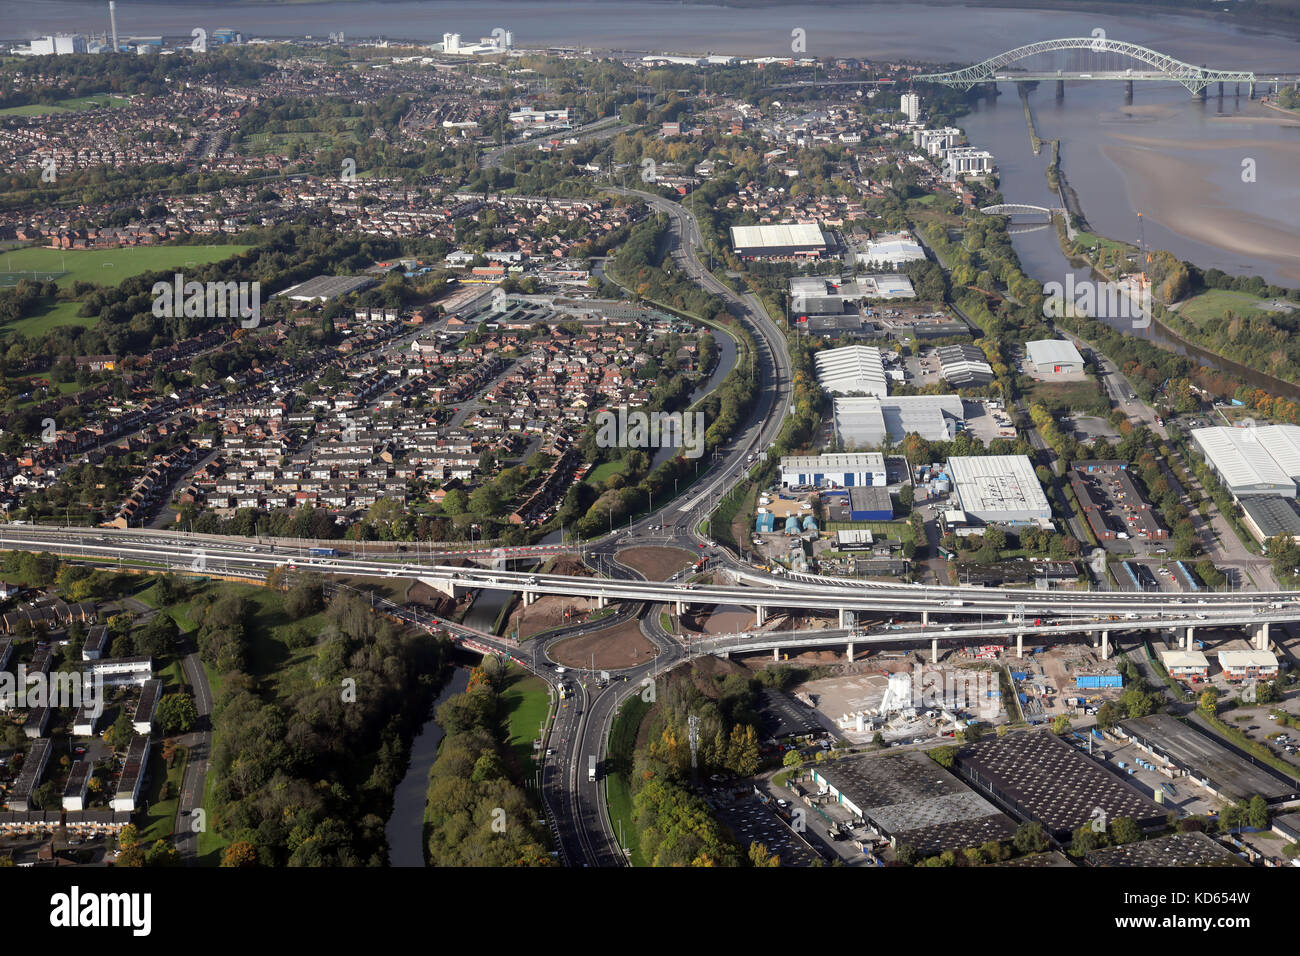 aerial view of the new A558 A533 road junction at Astmoor, Runcorn, Cheshire, UK - Stock Image